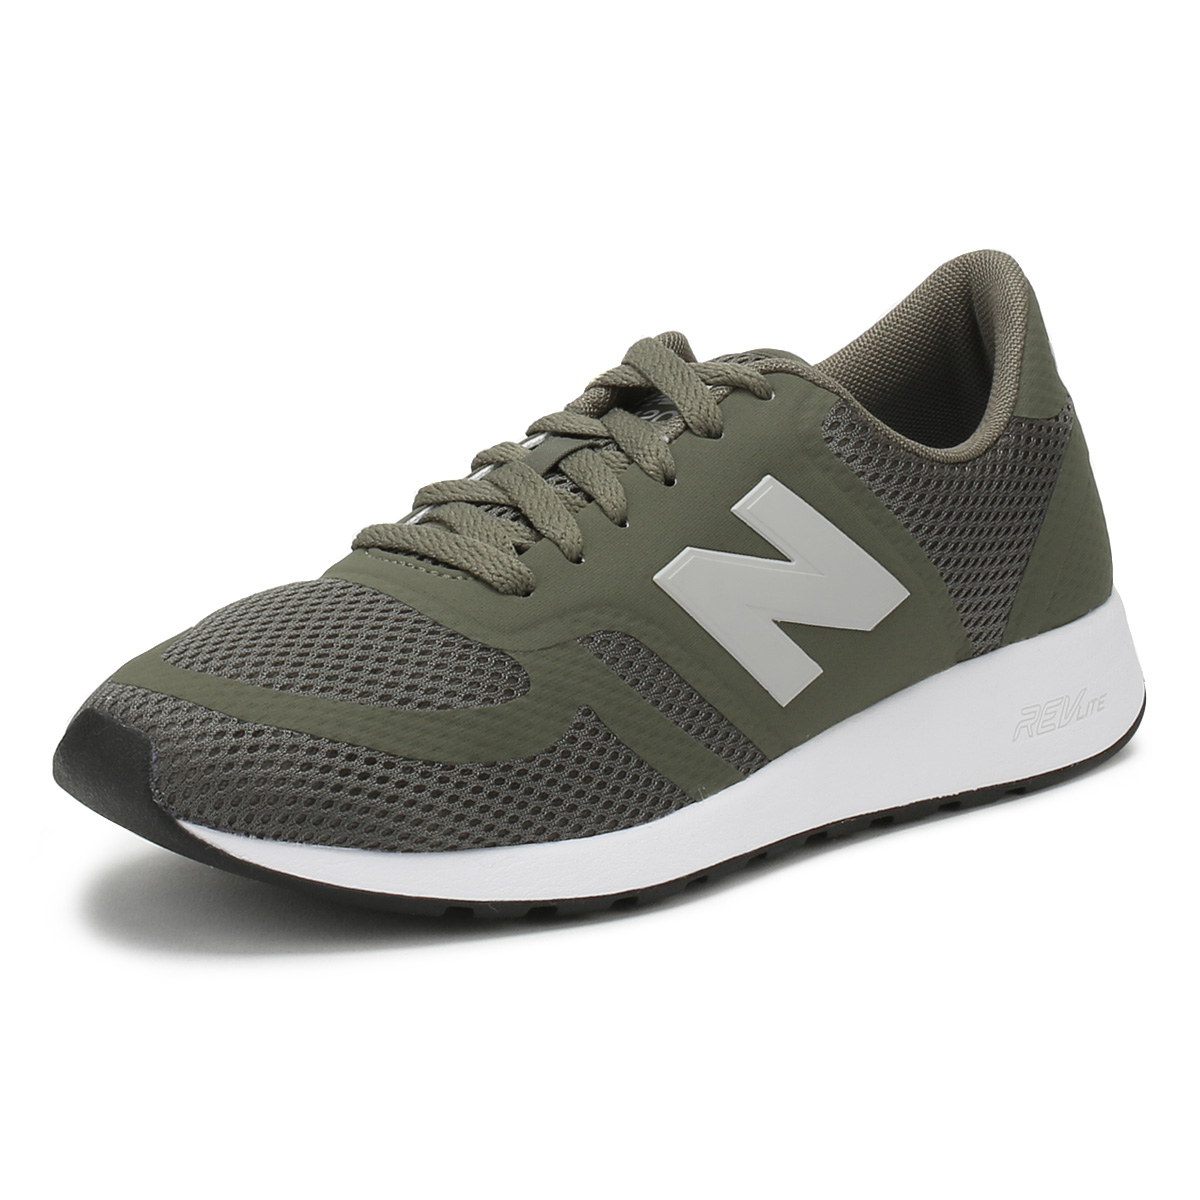 870735c8d50 Details about New Balance Mens Trainers Military Green 420 Lace Up Sport  Casual Running Shoes